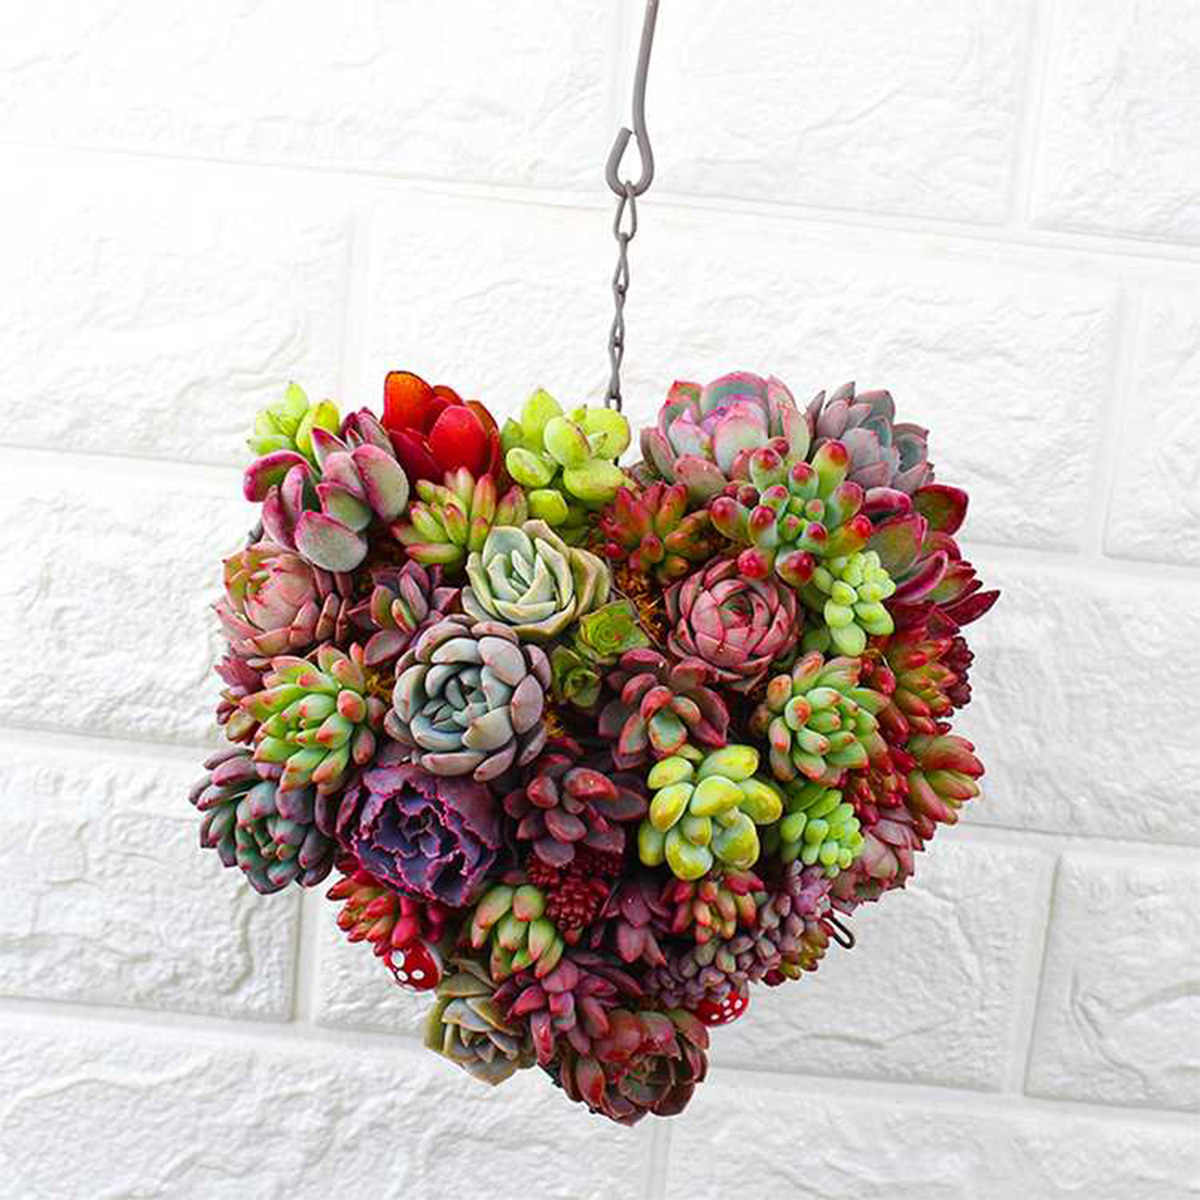 1PCS Heart Shape Iron Wire Wreath Hanging Metal Frame Home Cafe Plant Succulent Flower Basket Holder Pot A20